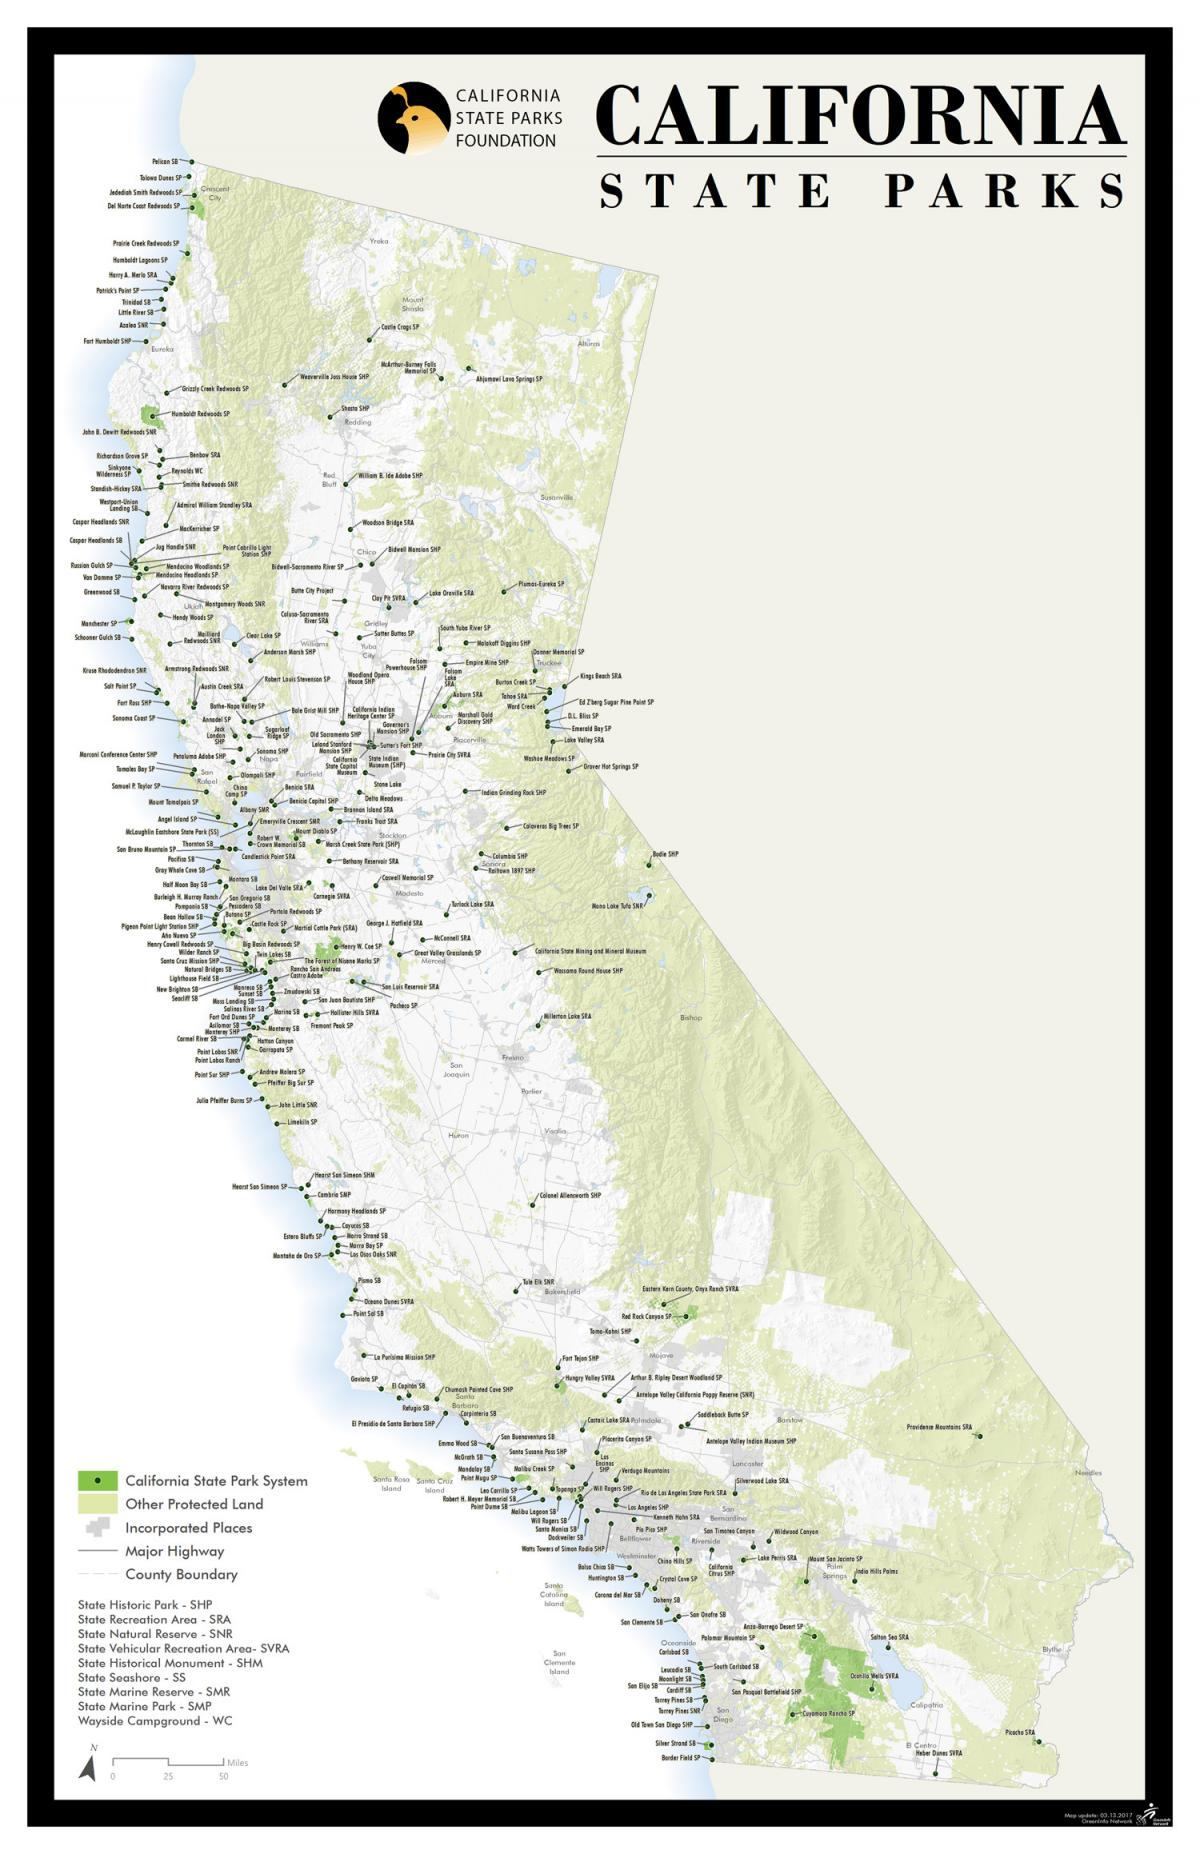 California State Park Foundation: Activities Guide - California State Parks Map